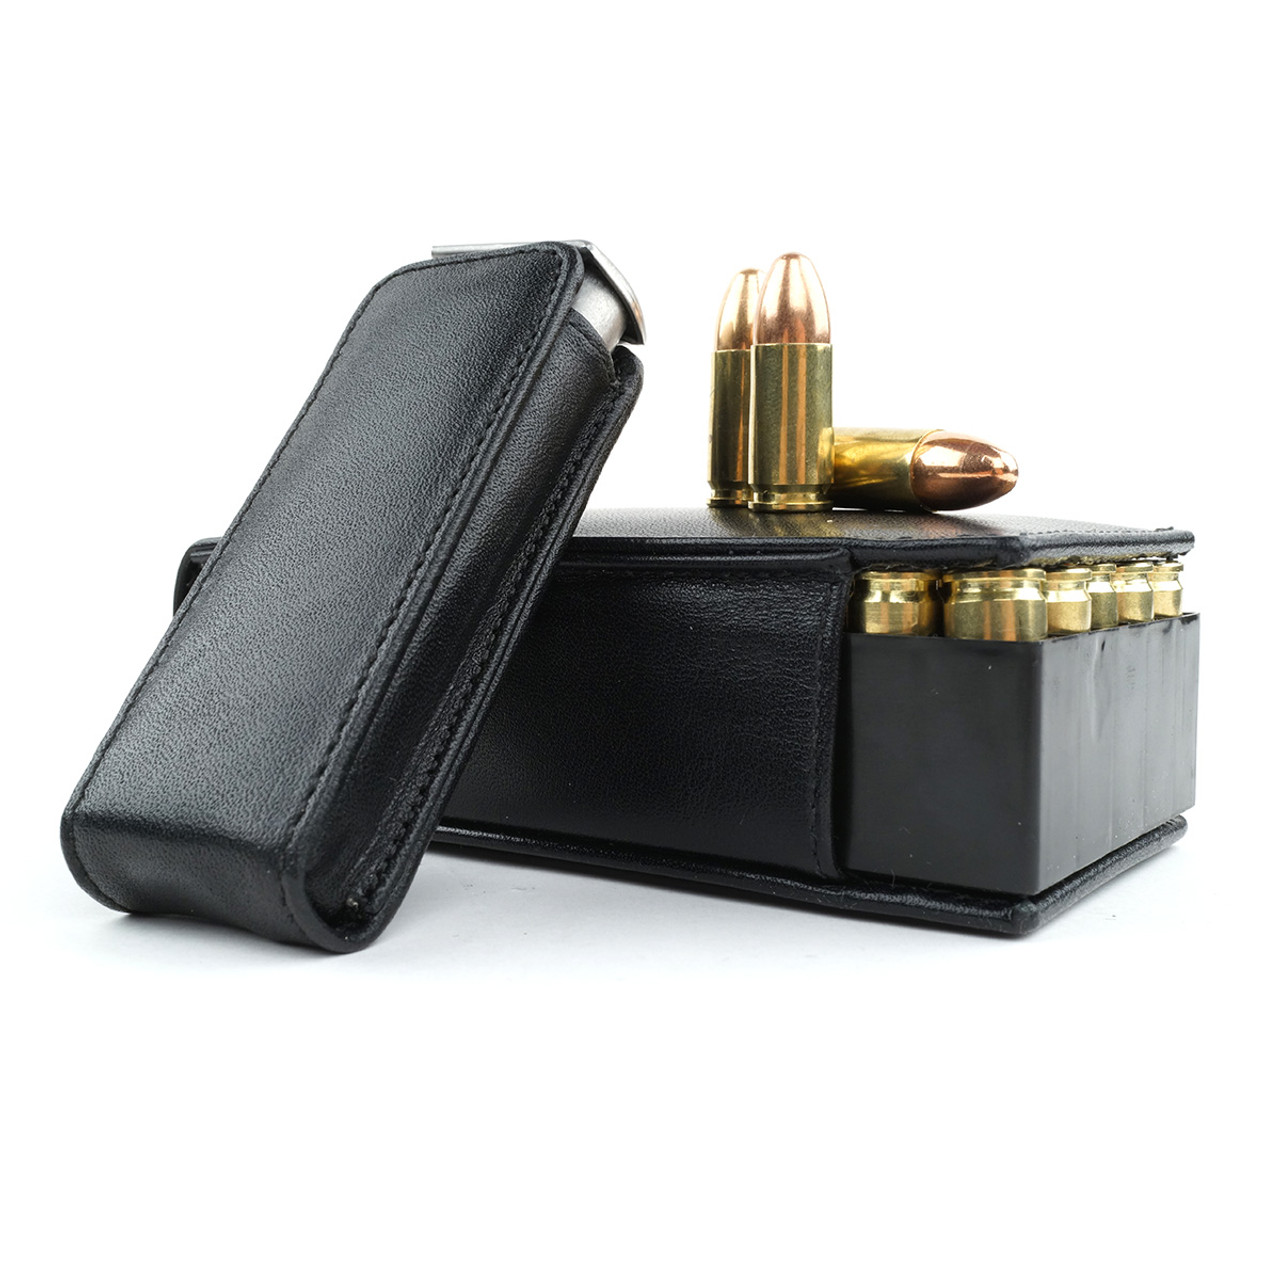 Kahr P9 Leather Bullet Brick